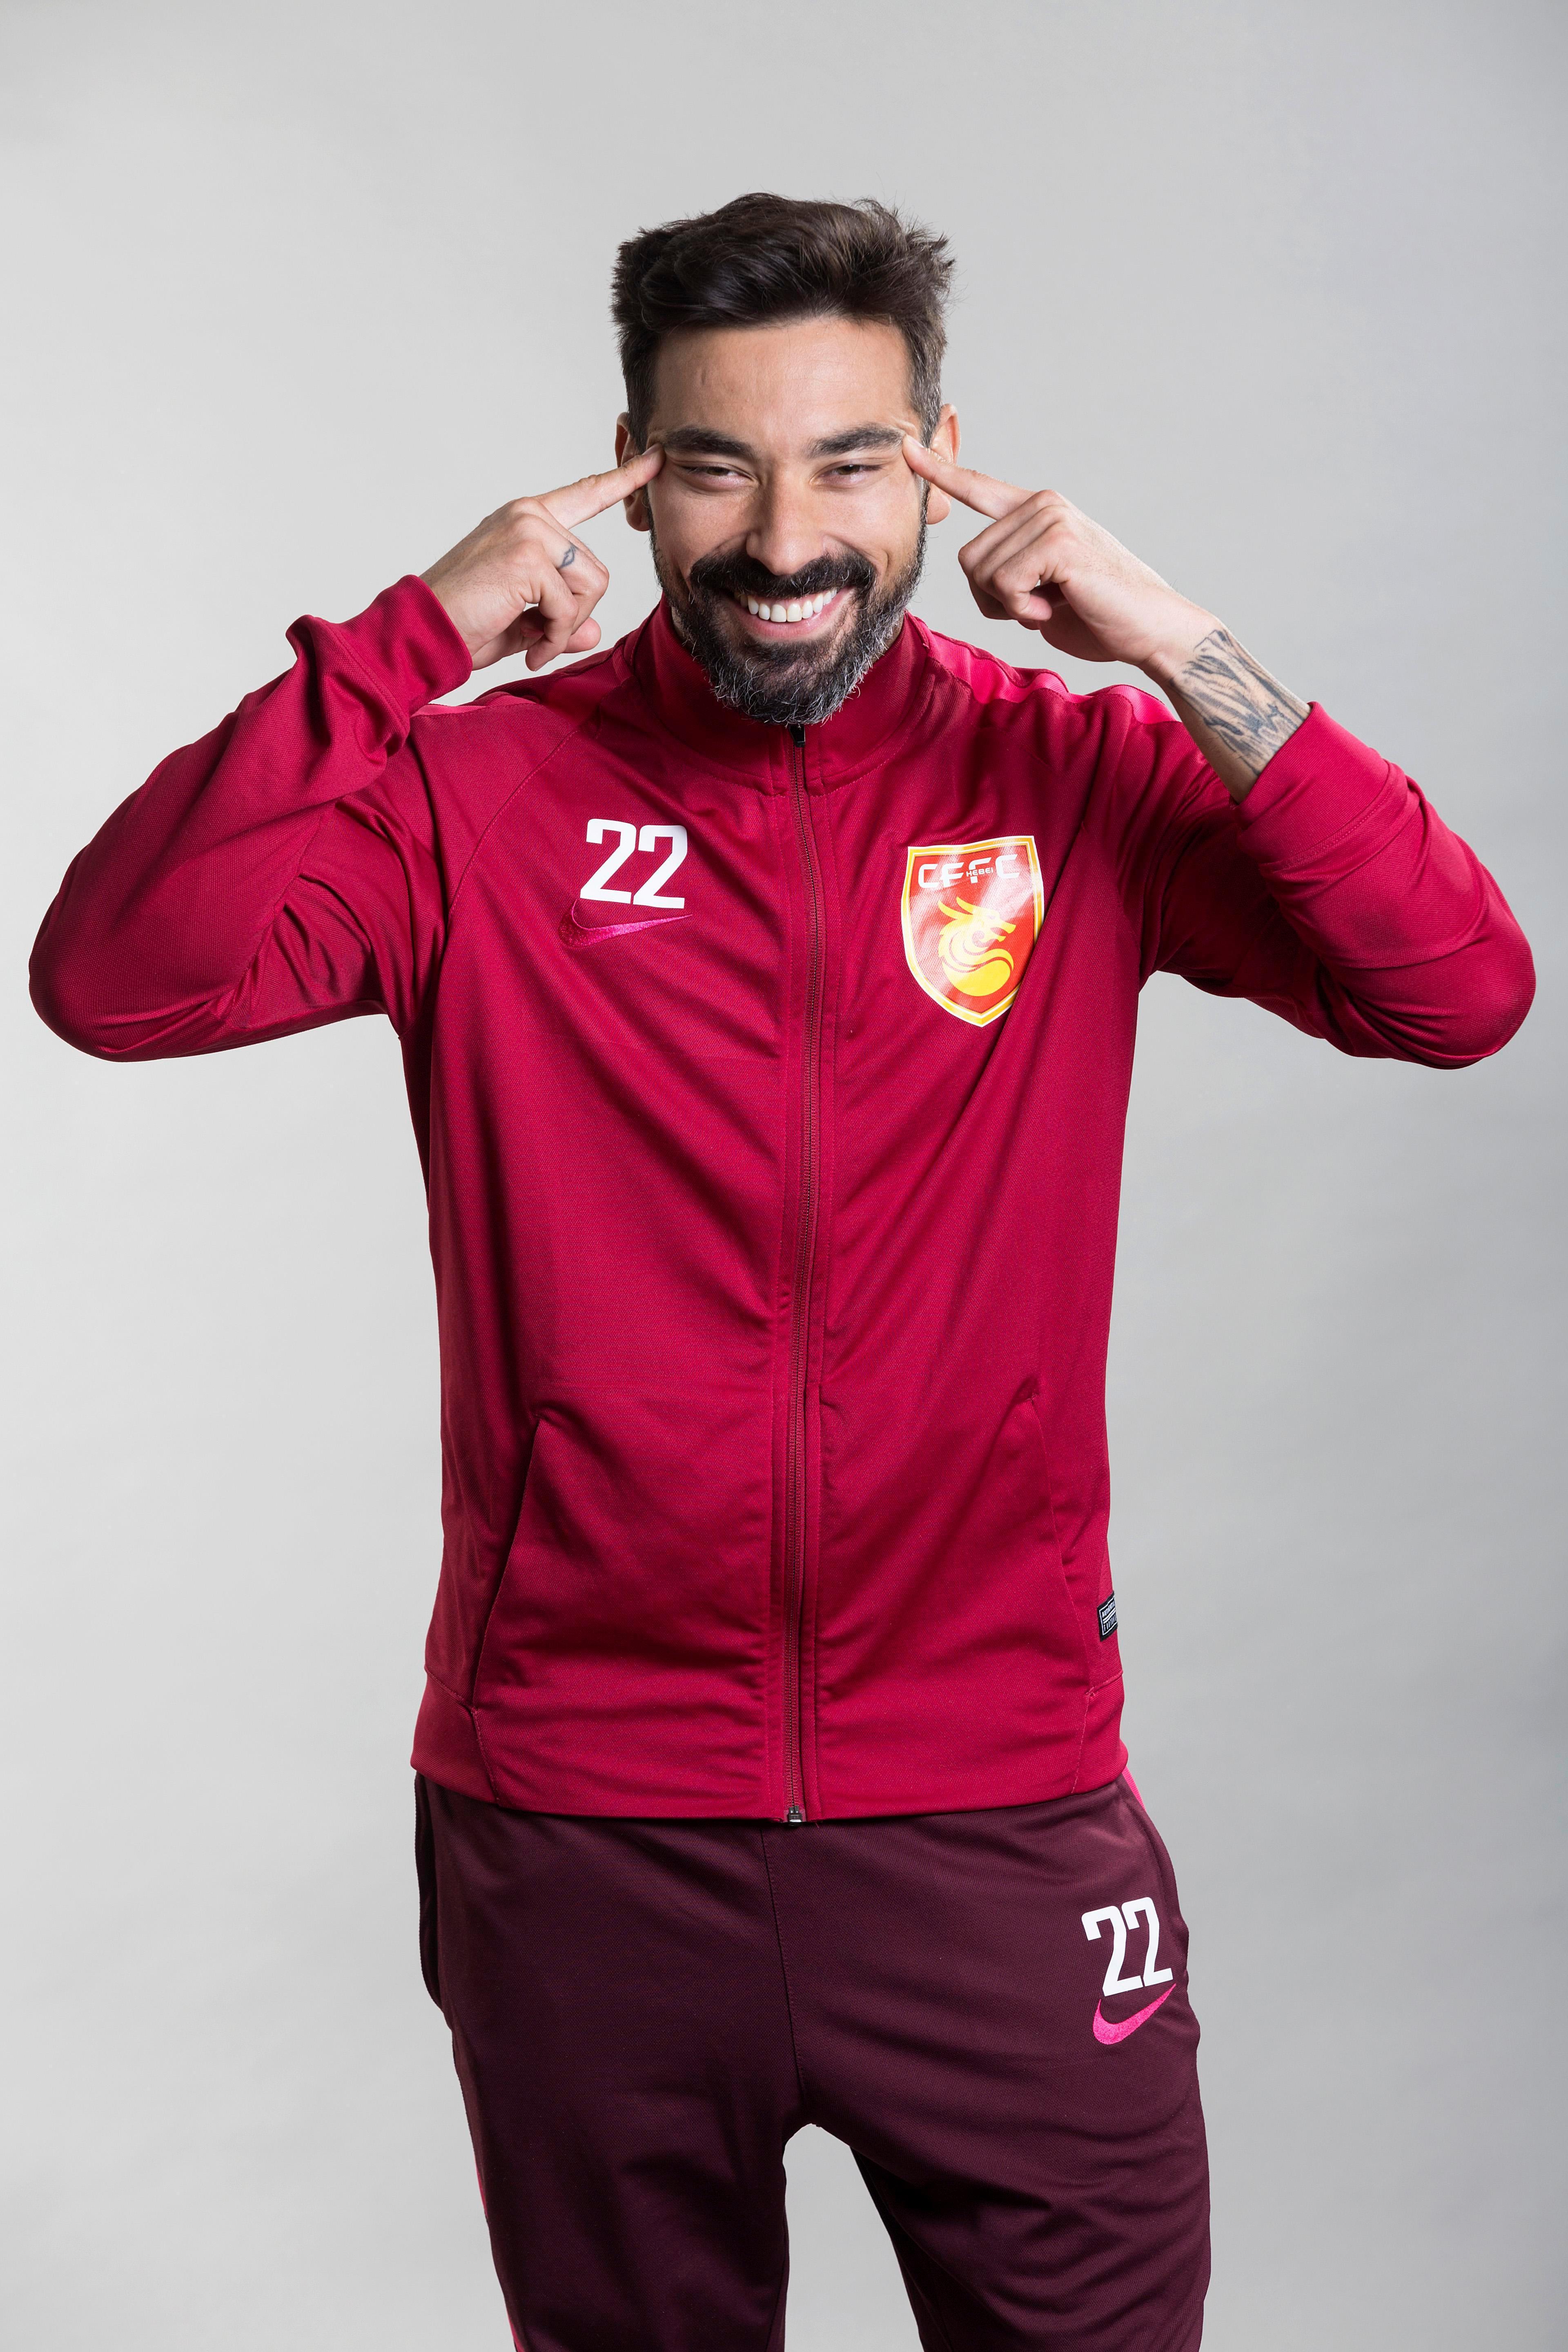 Ezequiel Lavezzi apologised for this gesture during a photoshoot weeks ago